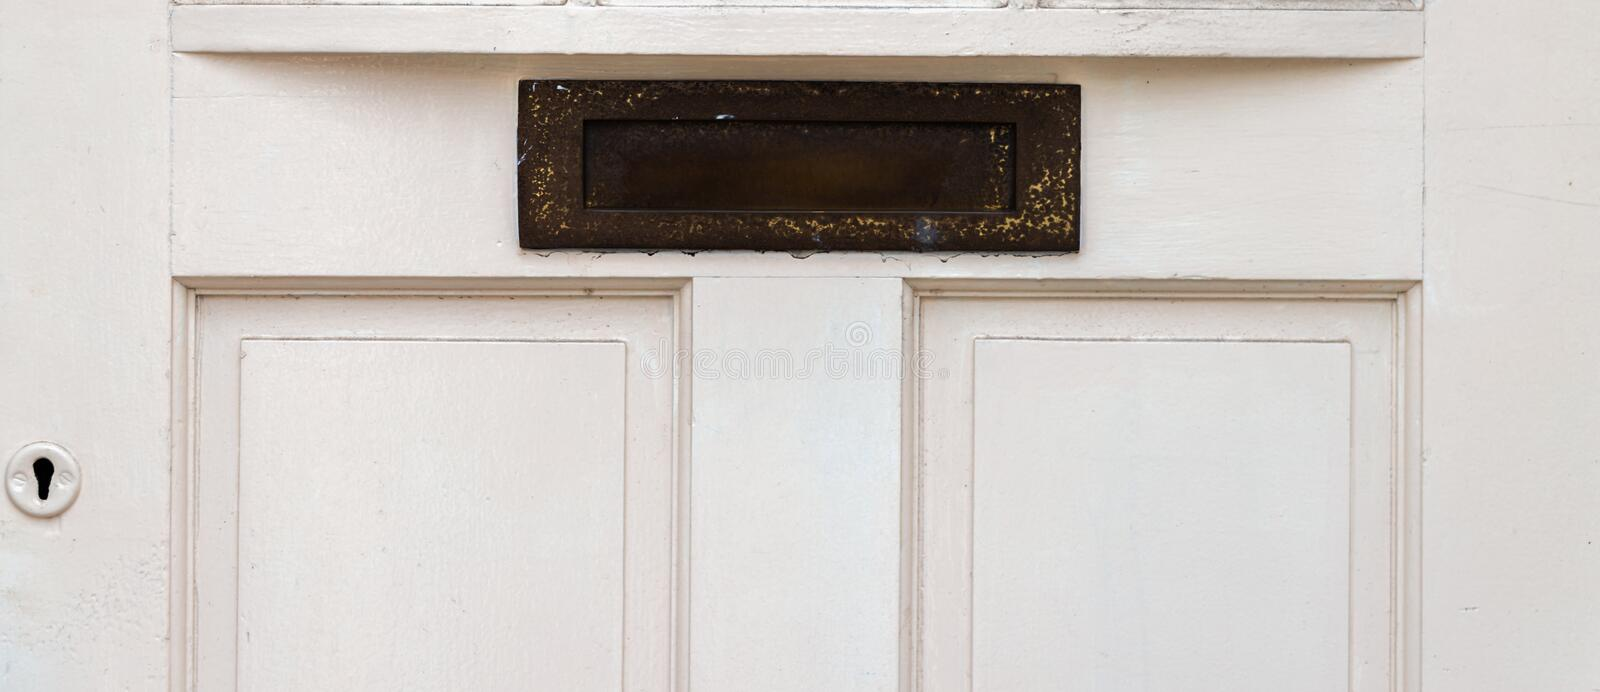 Old letterbox in the door, traditional way of delivering letters to the house, old mailbox. Correspondence royalty free stock photos